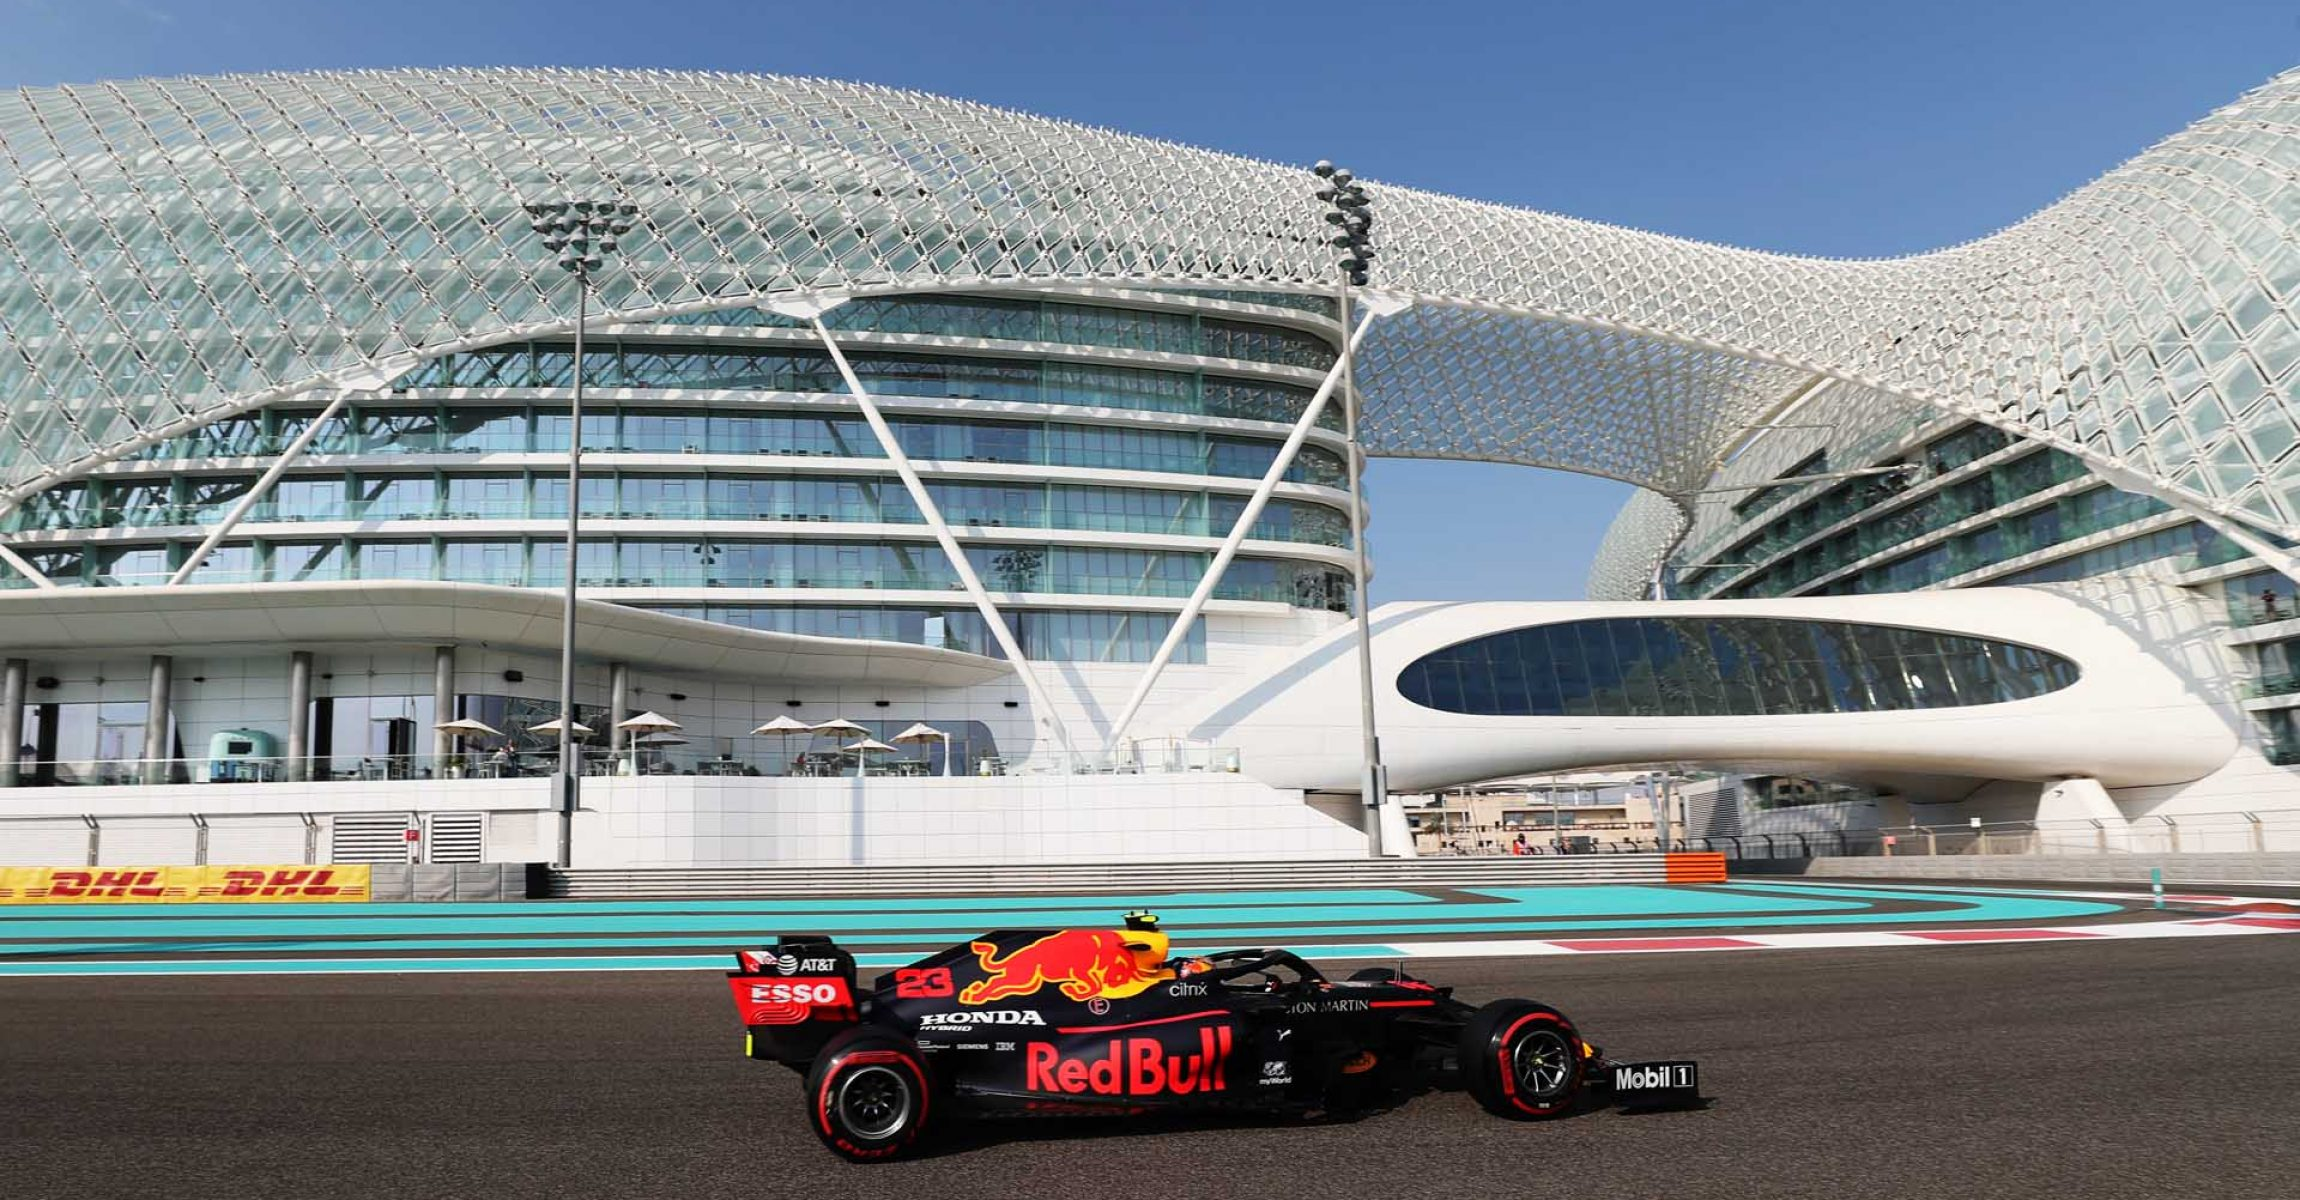 ABU DHABI, UNITED ARAB EMIRATES - DECEMBER 12: Alexander Albon of Thailand driving the (23) Aston Martin Red Bull Racing RB16 on track during final practice ahead of the F1 Grand Prix of Abu Dhabi at Yas Marina Circuit on December 12, 2020 in Abu Dhabi, United Arab Emirates. (Photo by Kamran Jebreili - Pool/Getty Images)